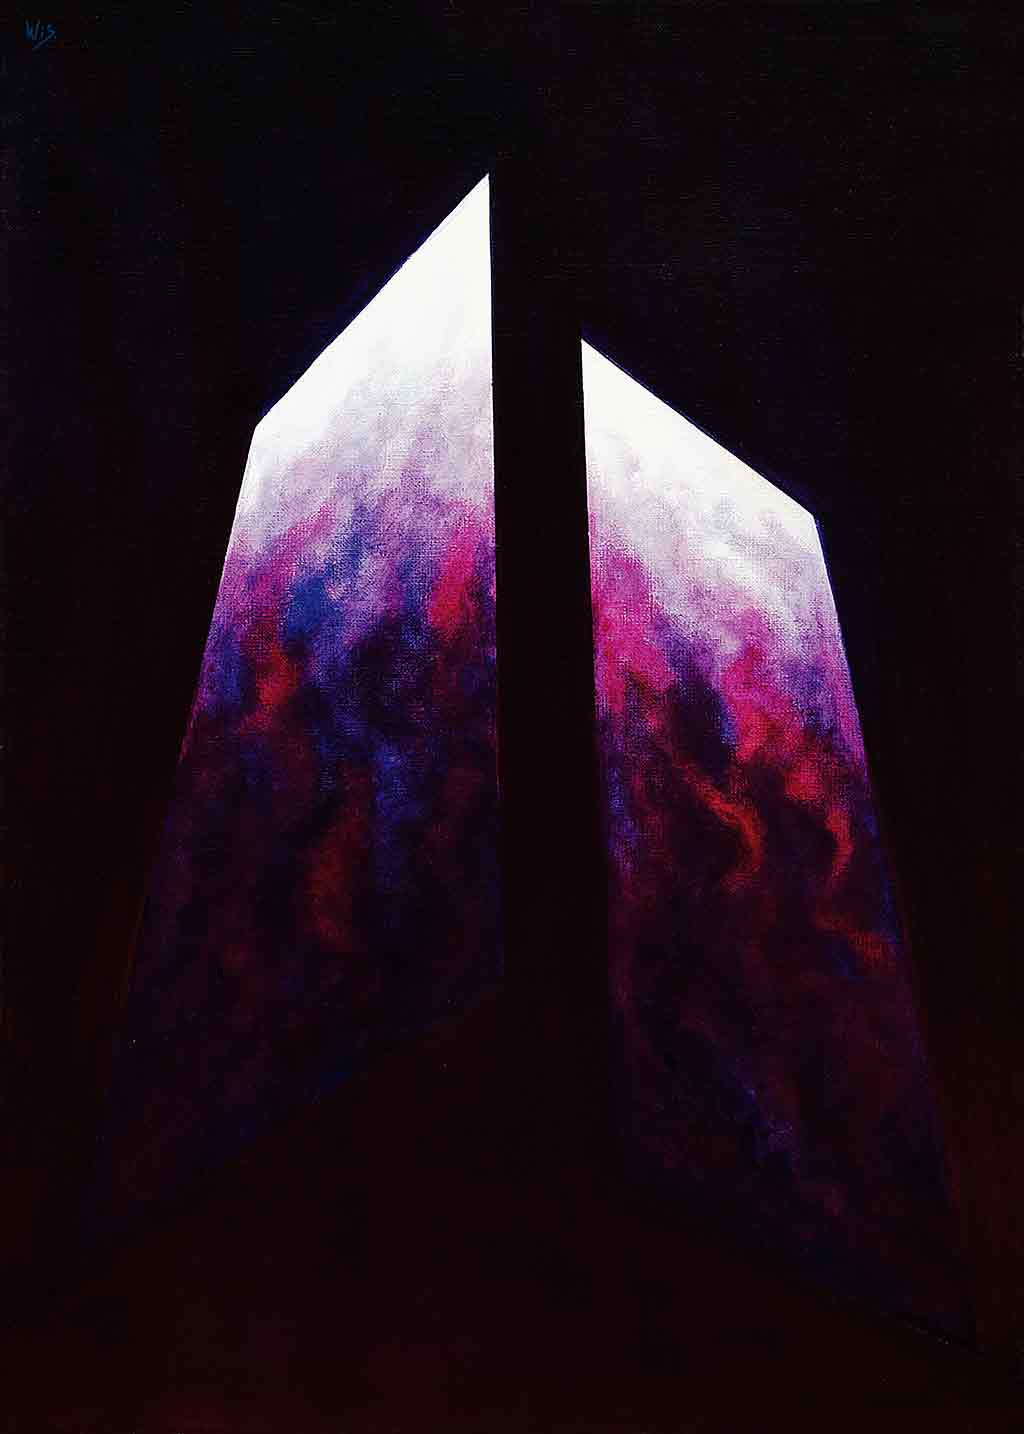 Abstract Lilac, 1995, Original Acrylic Painting and Art Canvas Print by Wieslaw Sadurski